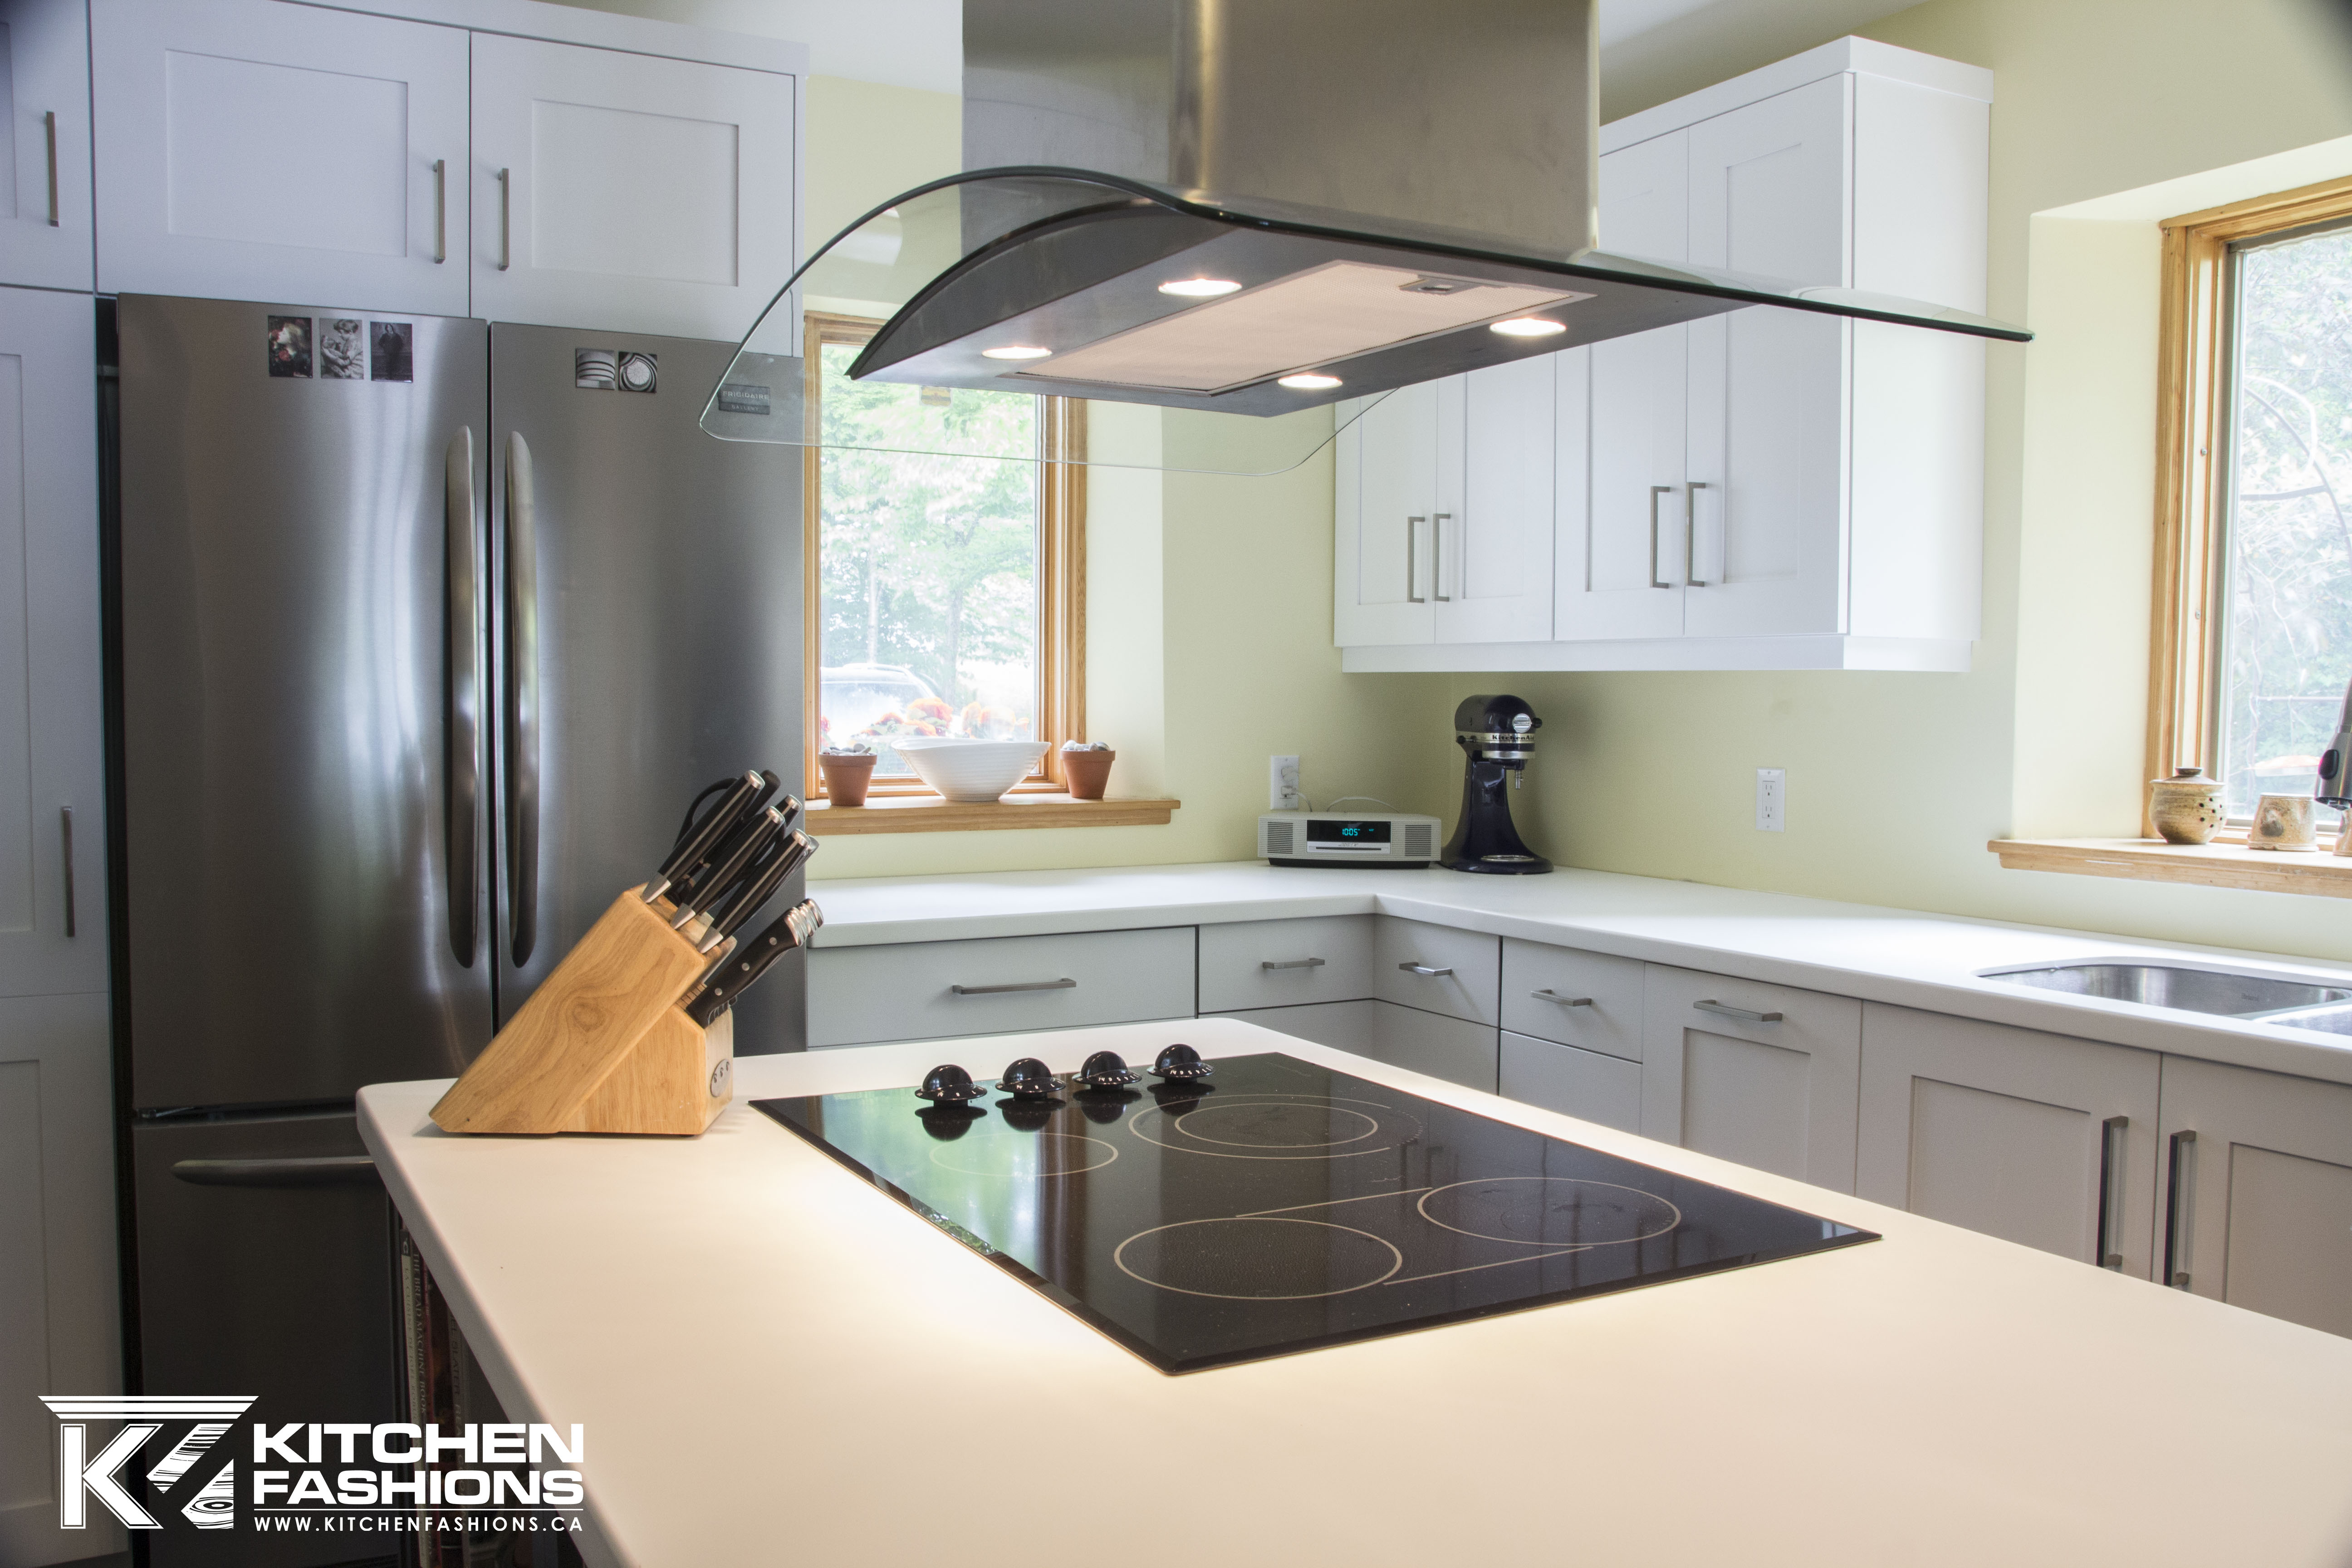 kitchen fashions home countertop gallery